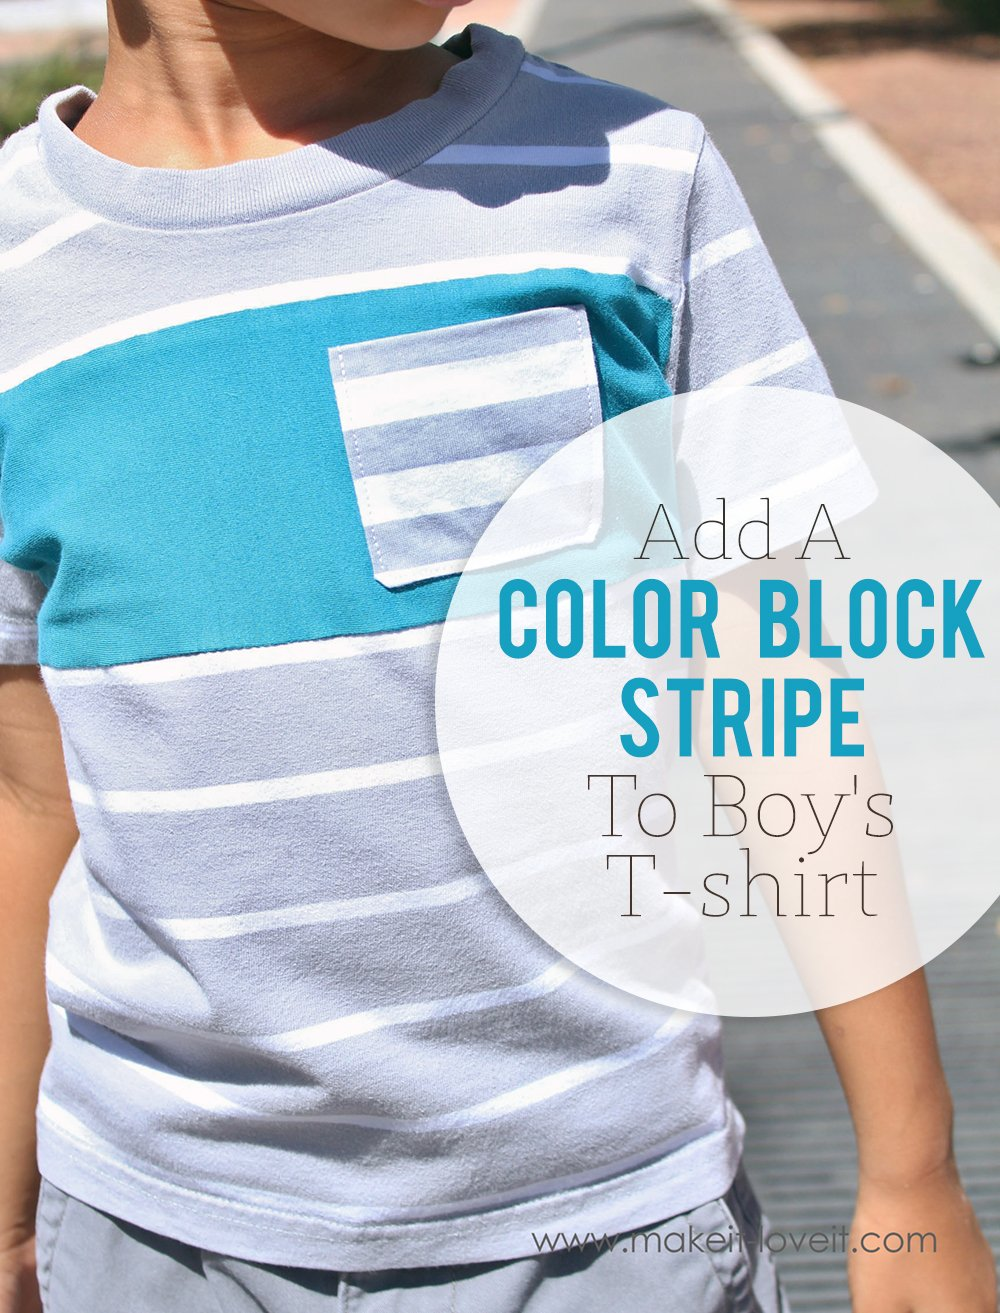 Add a Color Block Stripe to a T-shirt (…to add length)